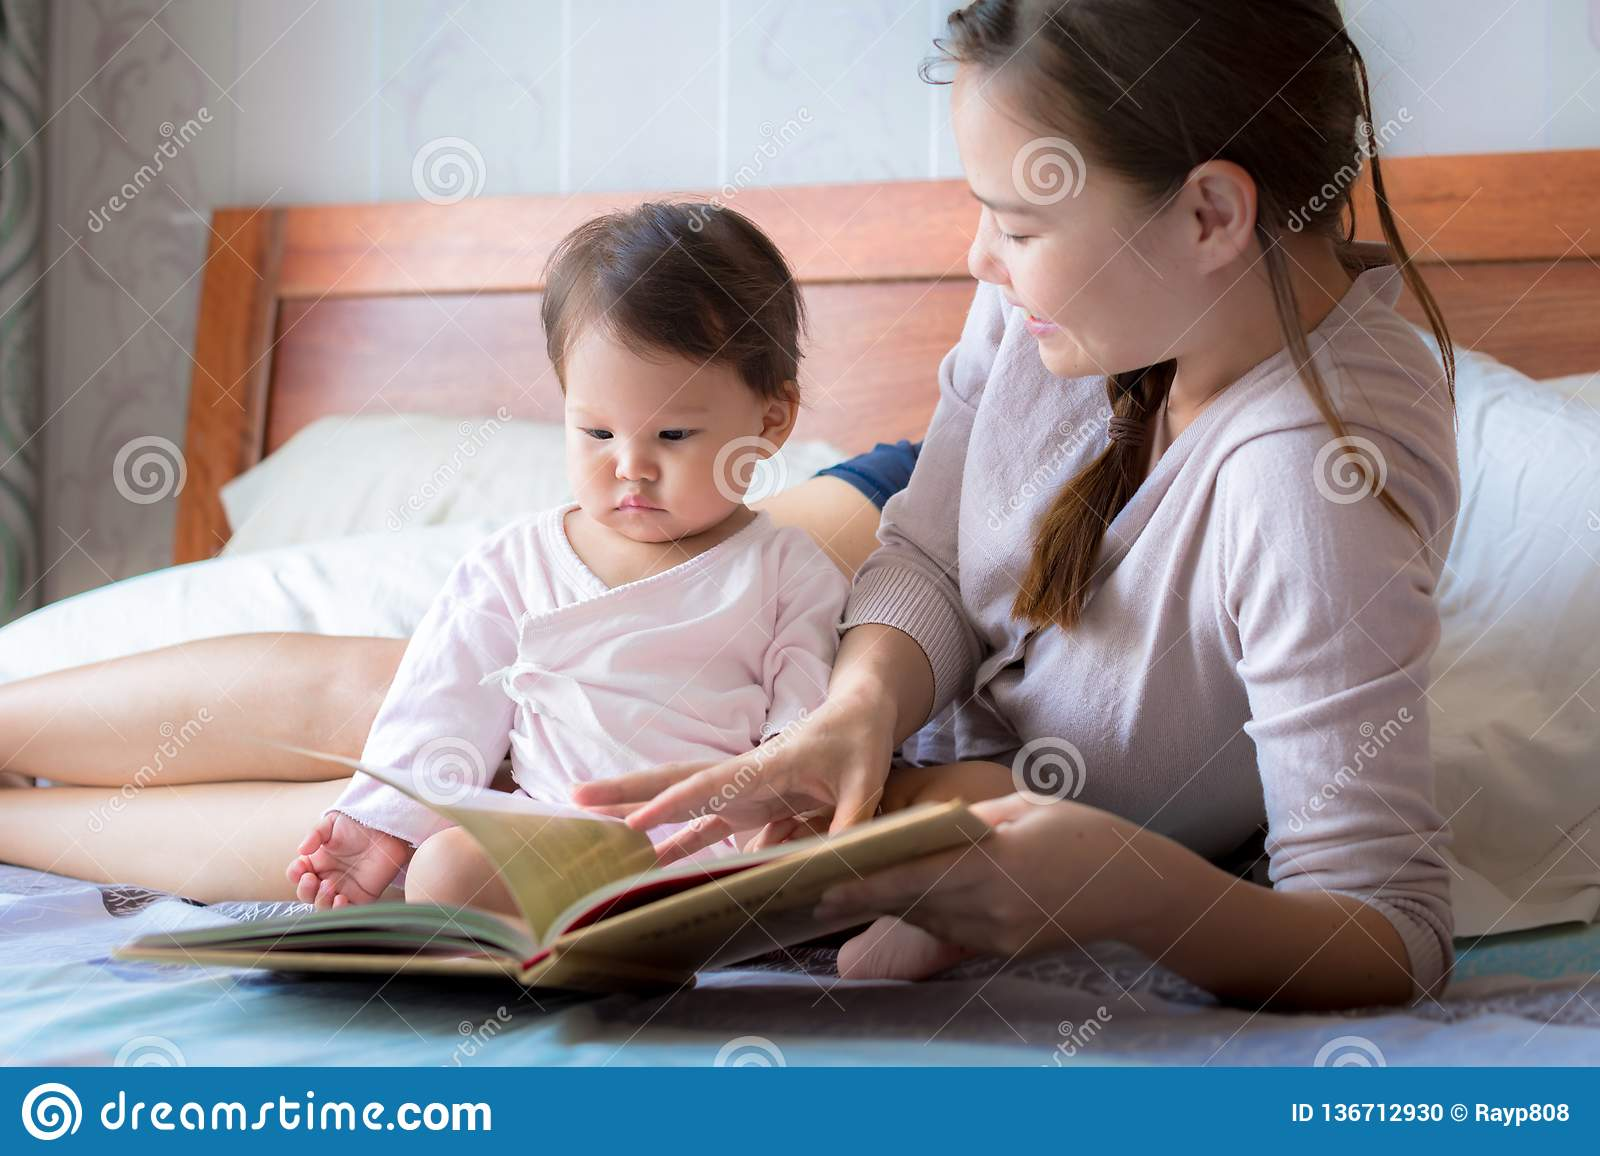 Mother reading a book to her child on the bed. Bedtime story. Learning how to read